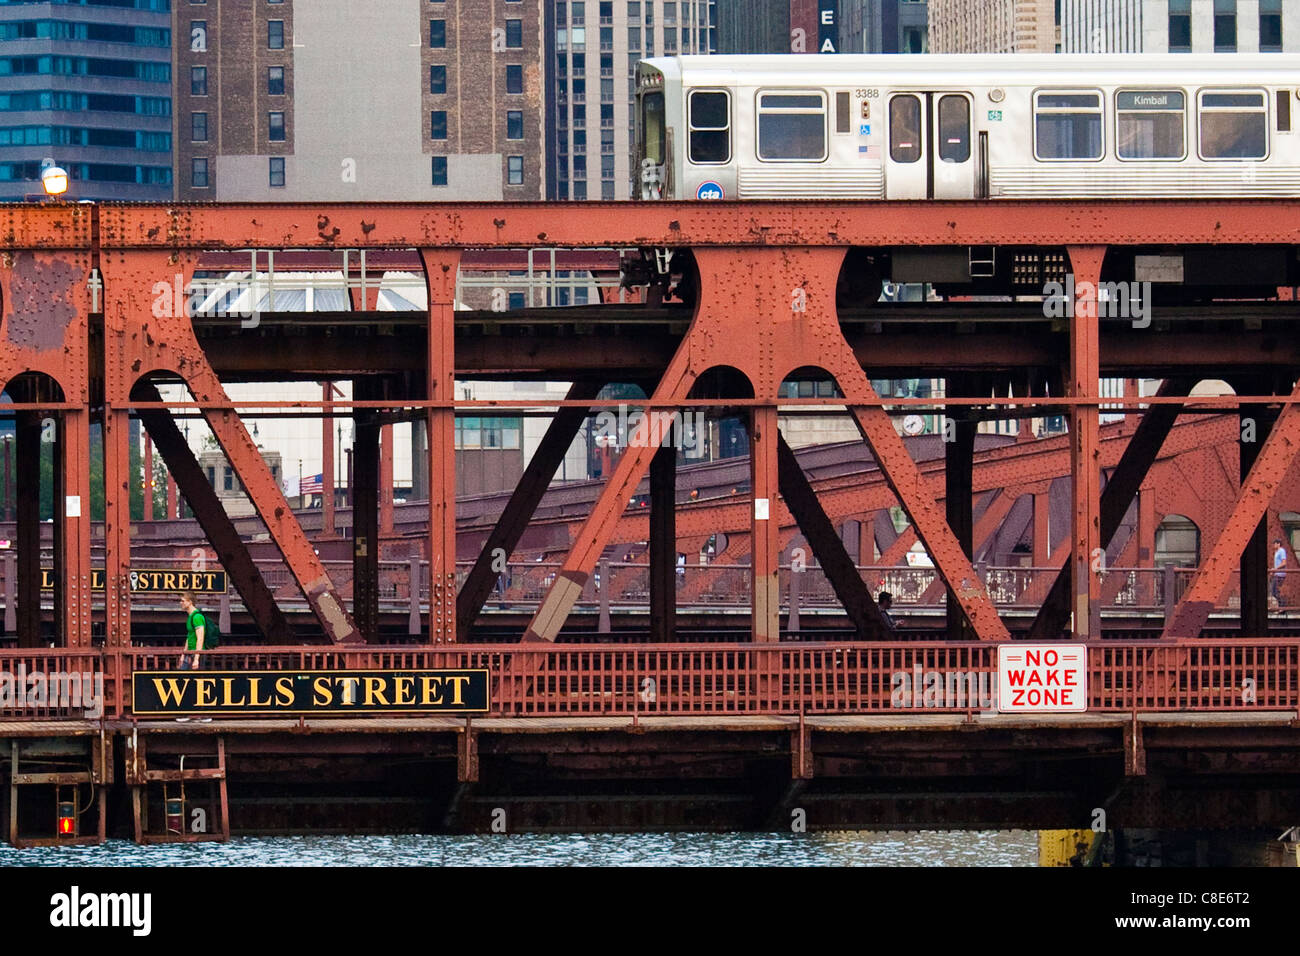 Wells Street Bridge, Chicago, Illinois - Stock Image